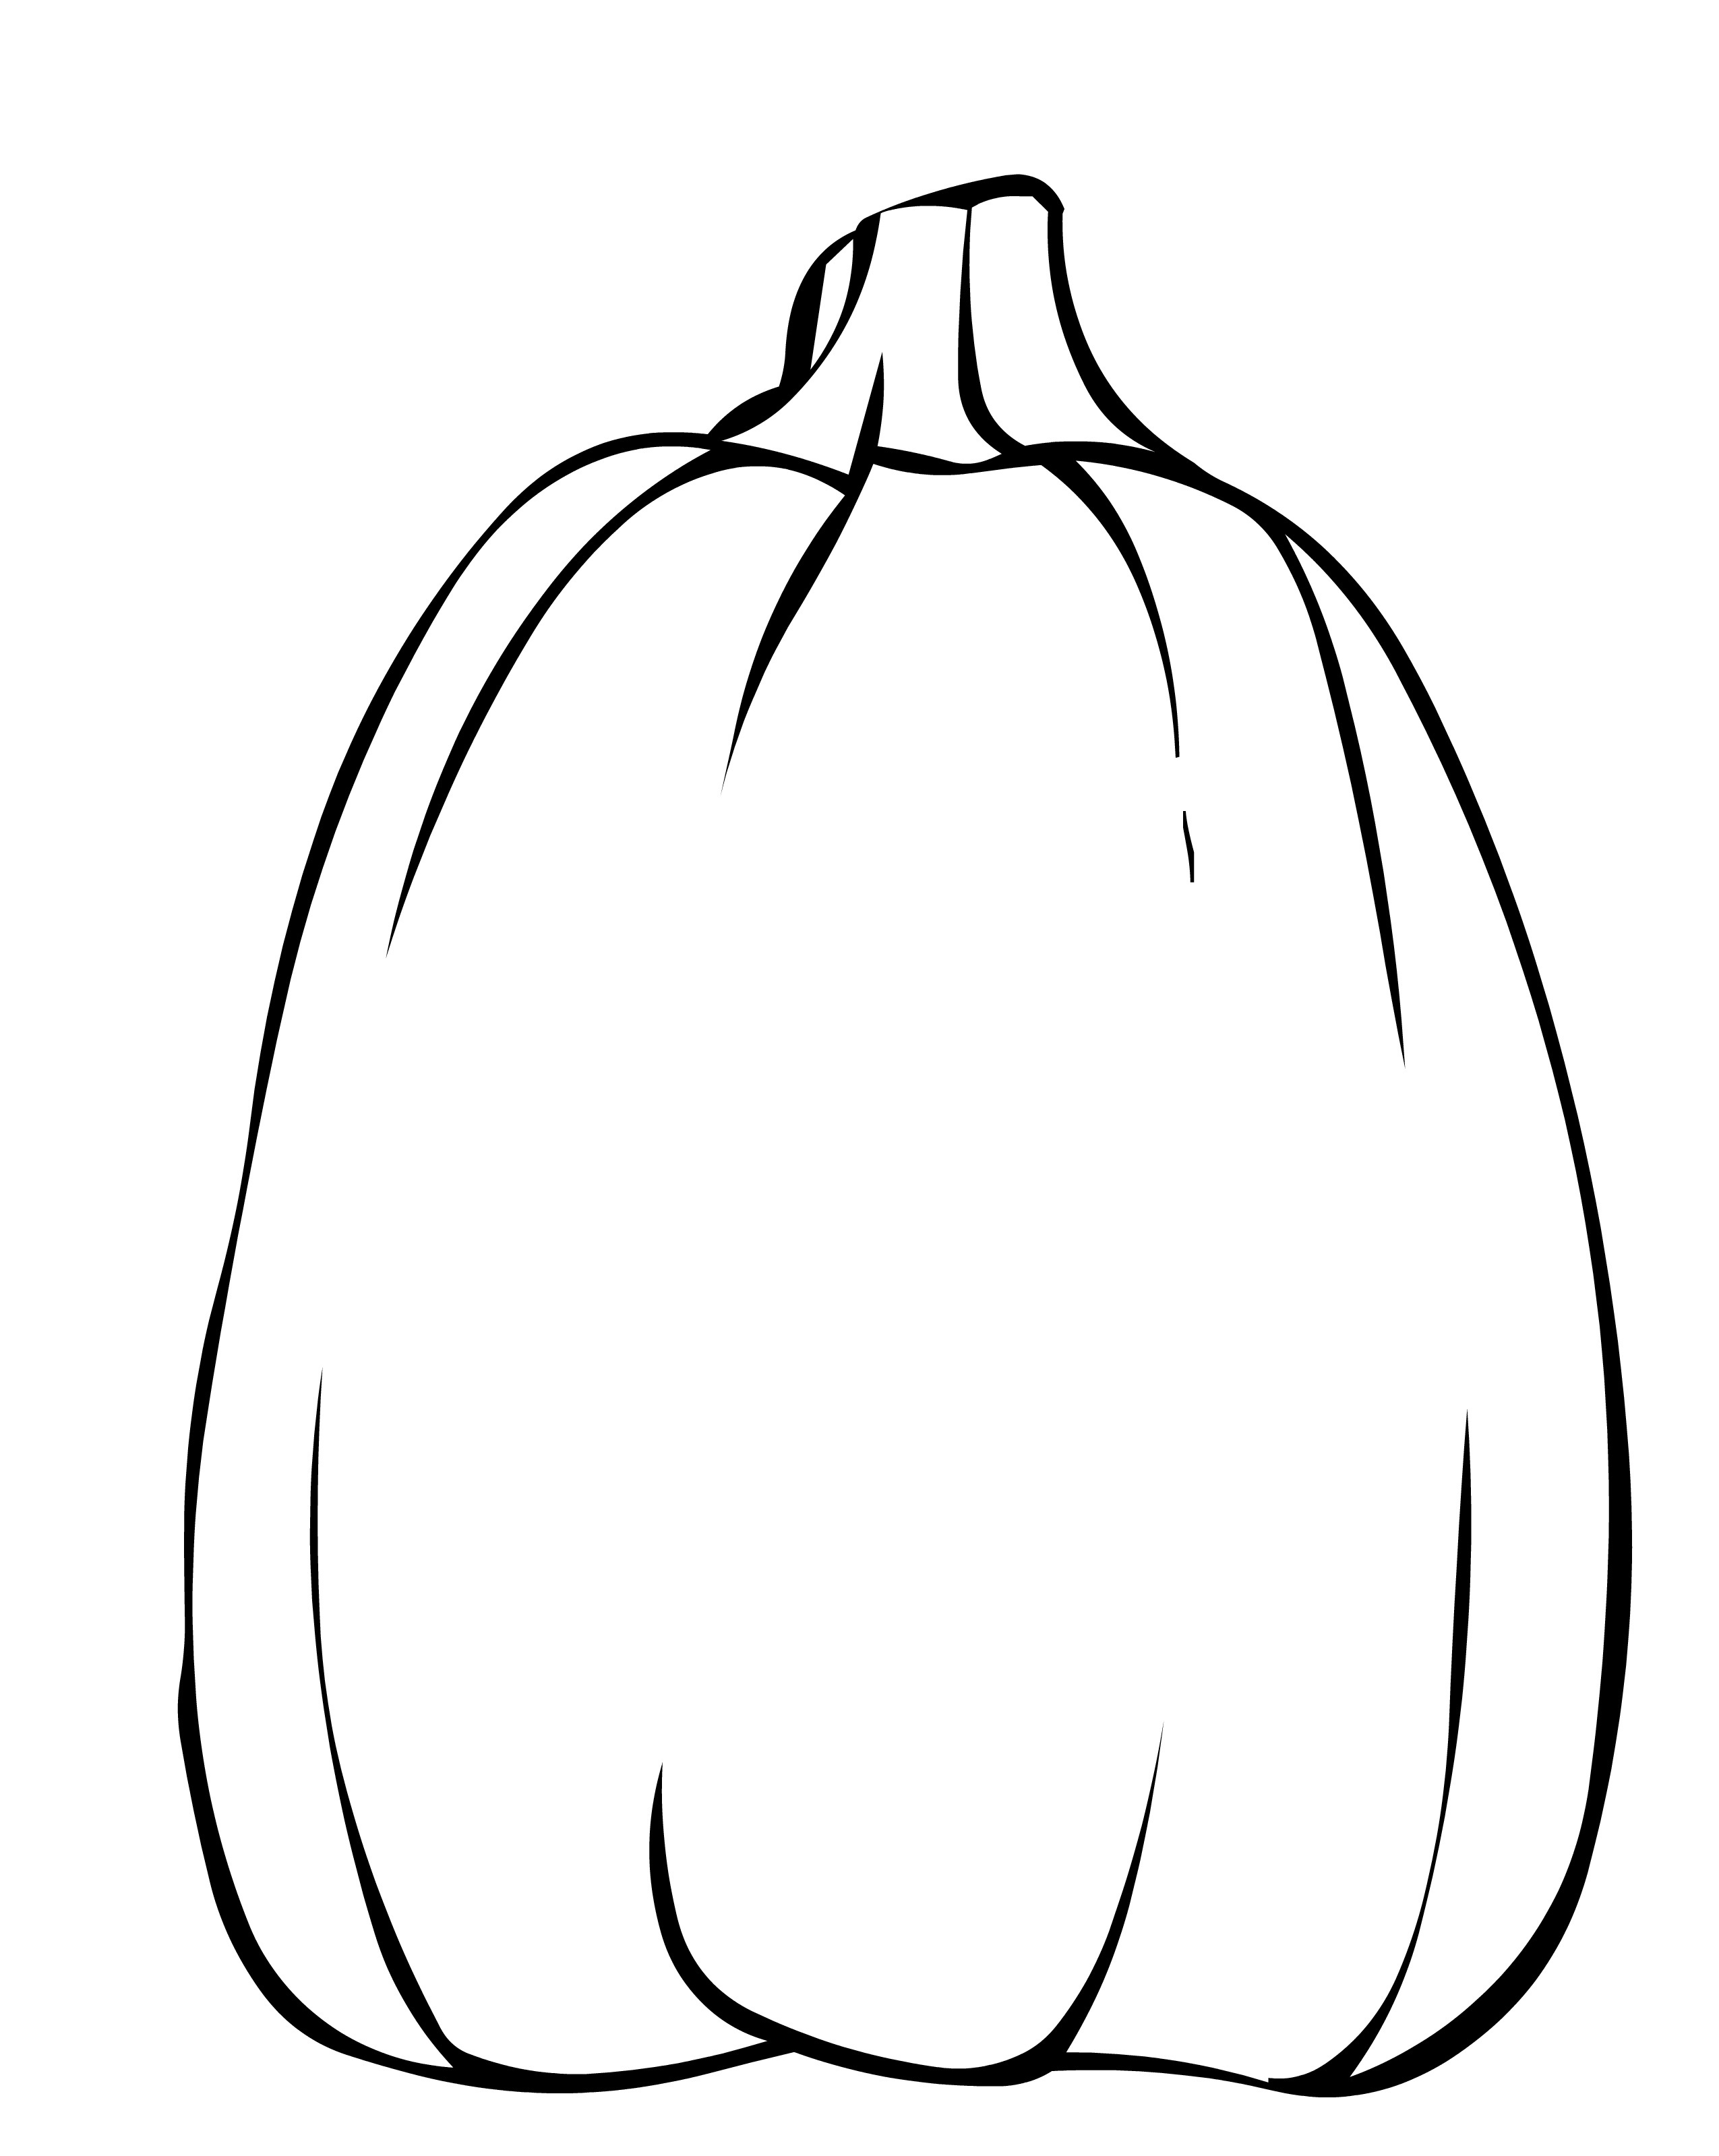 Printable Pumpkin Coloring Pages Printable Pumpkin Coloring Pages Coloringme